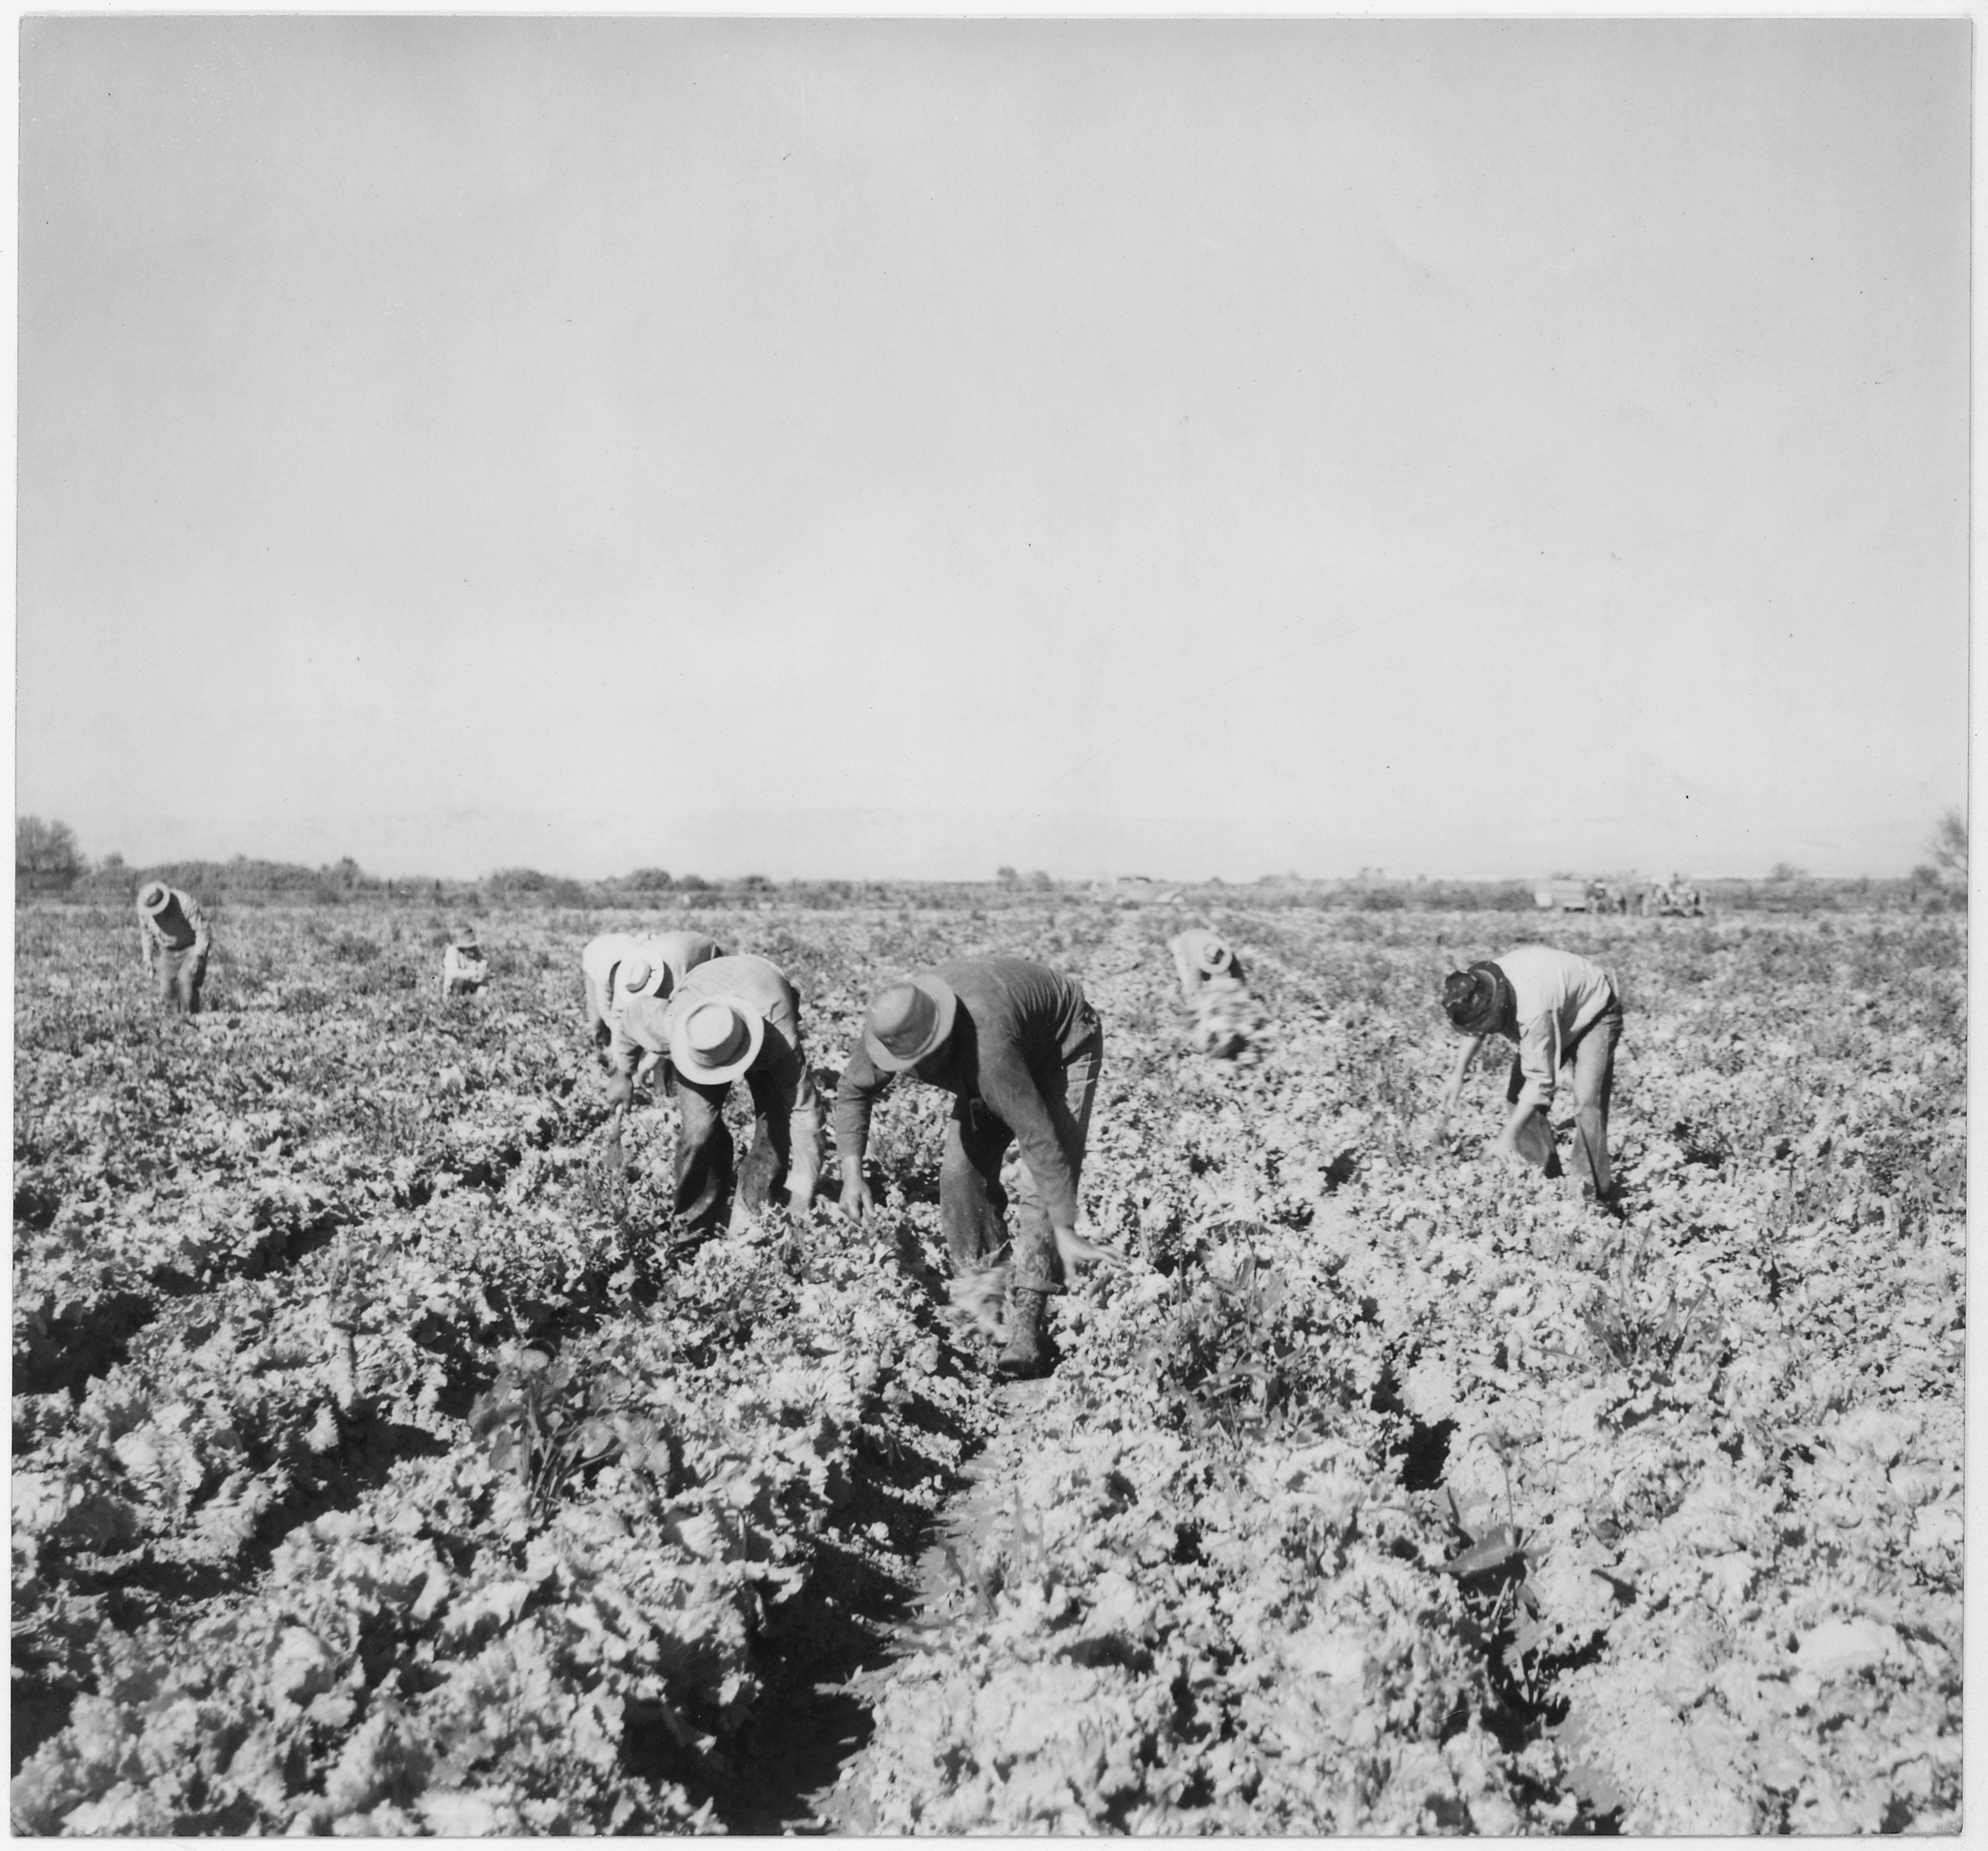 history of imperial valley